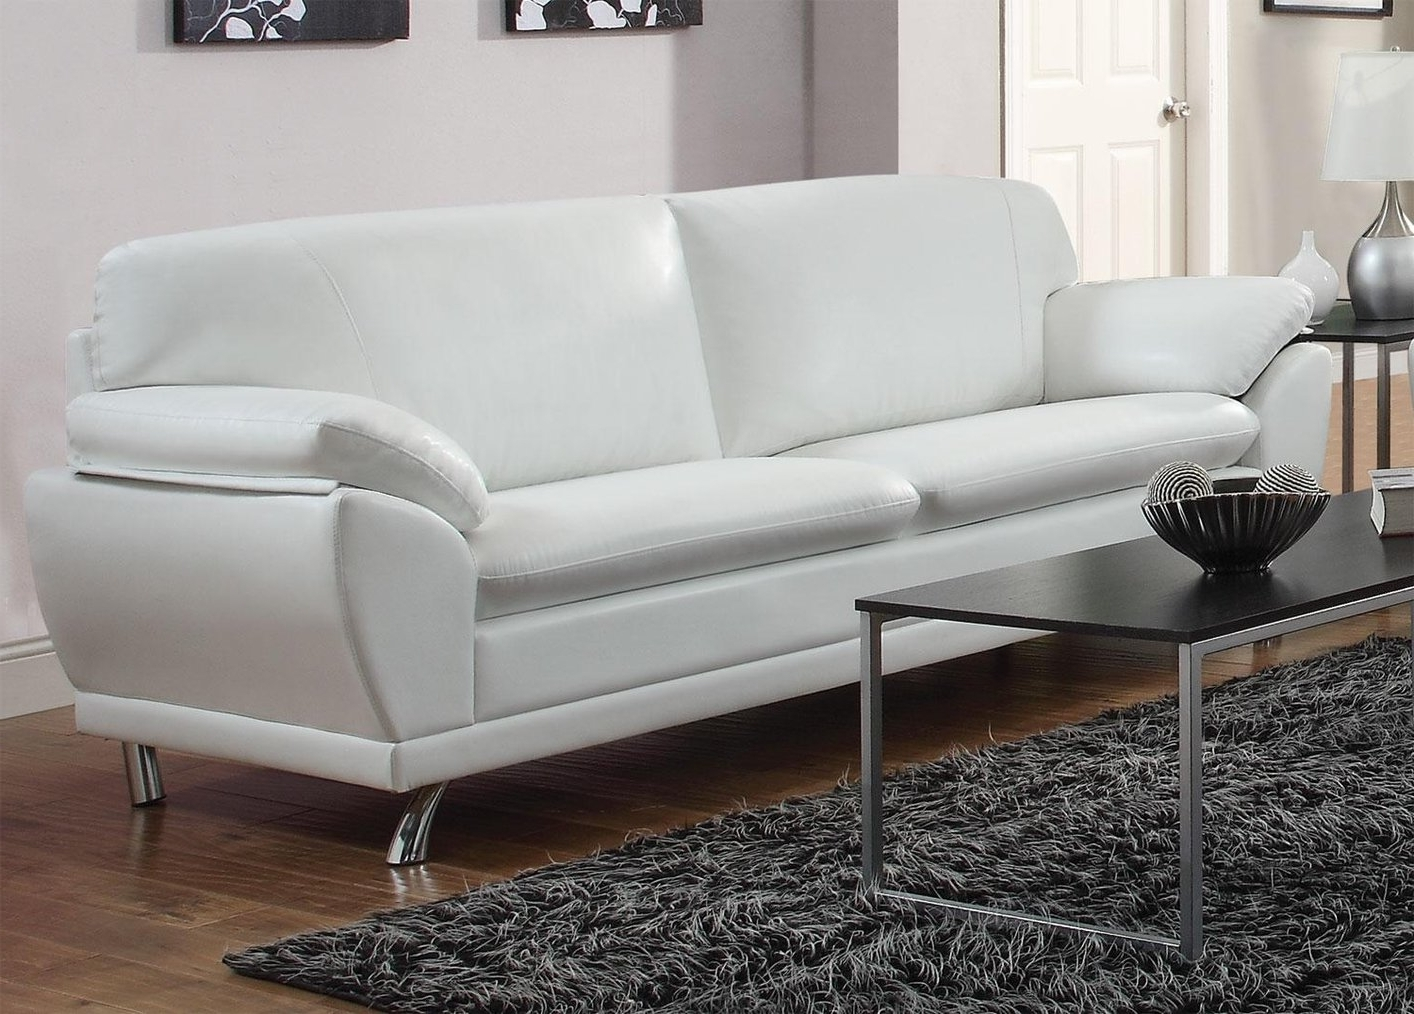 Newest White Leather Sofas Inside How To Keep Your White Leather Sofa Clean – Pickndecor (View 3 of 15)